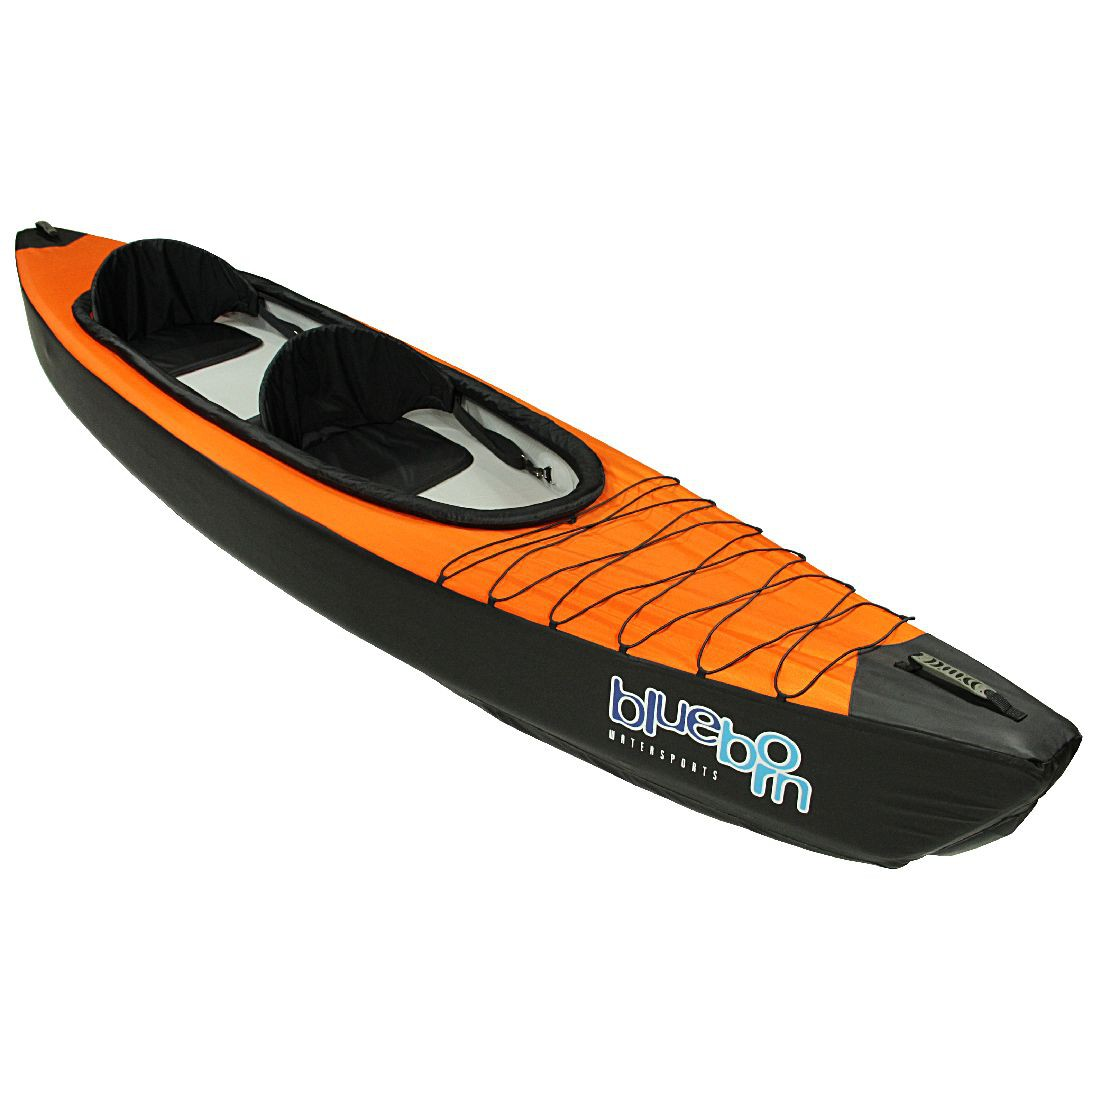 Blueborn Boat KK2 Drop Stitch - 2 person touring kayak with nylon hull 365x77 cm | eBay